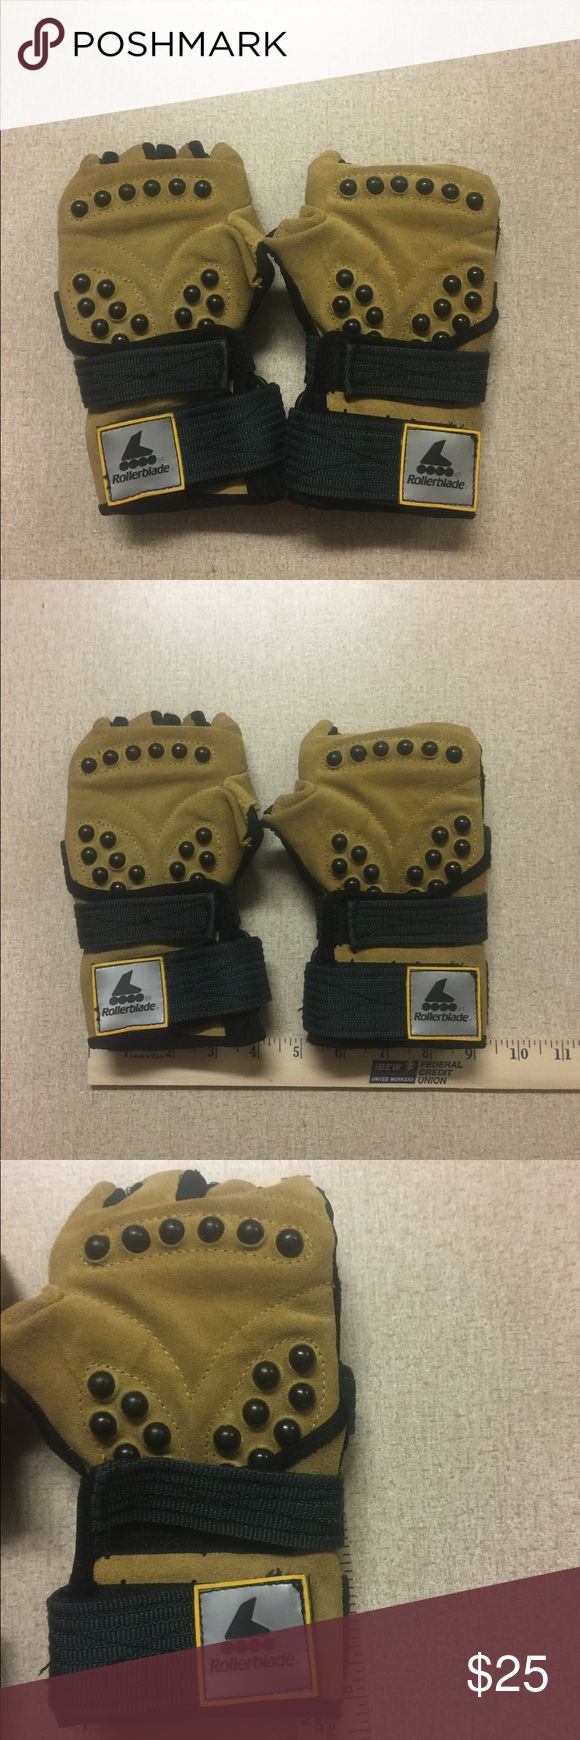 BNWOT Rollerblading Gloves Super protection Rollerblading gloves made by Rollerblade. Excellent condition please see pictures for details and ask about price reduction for discount shipping during closet clear out! Rollerblade Accessories Gloves